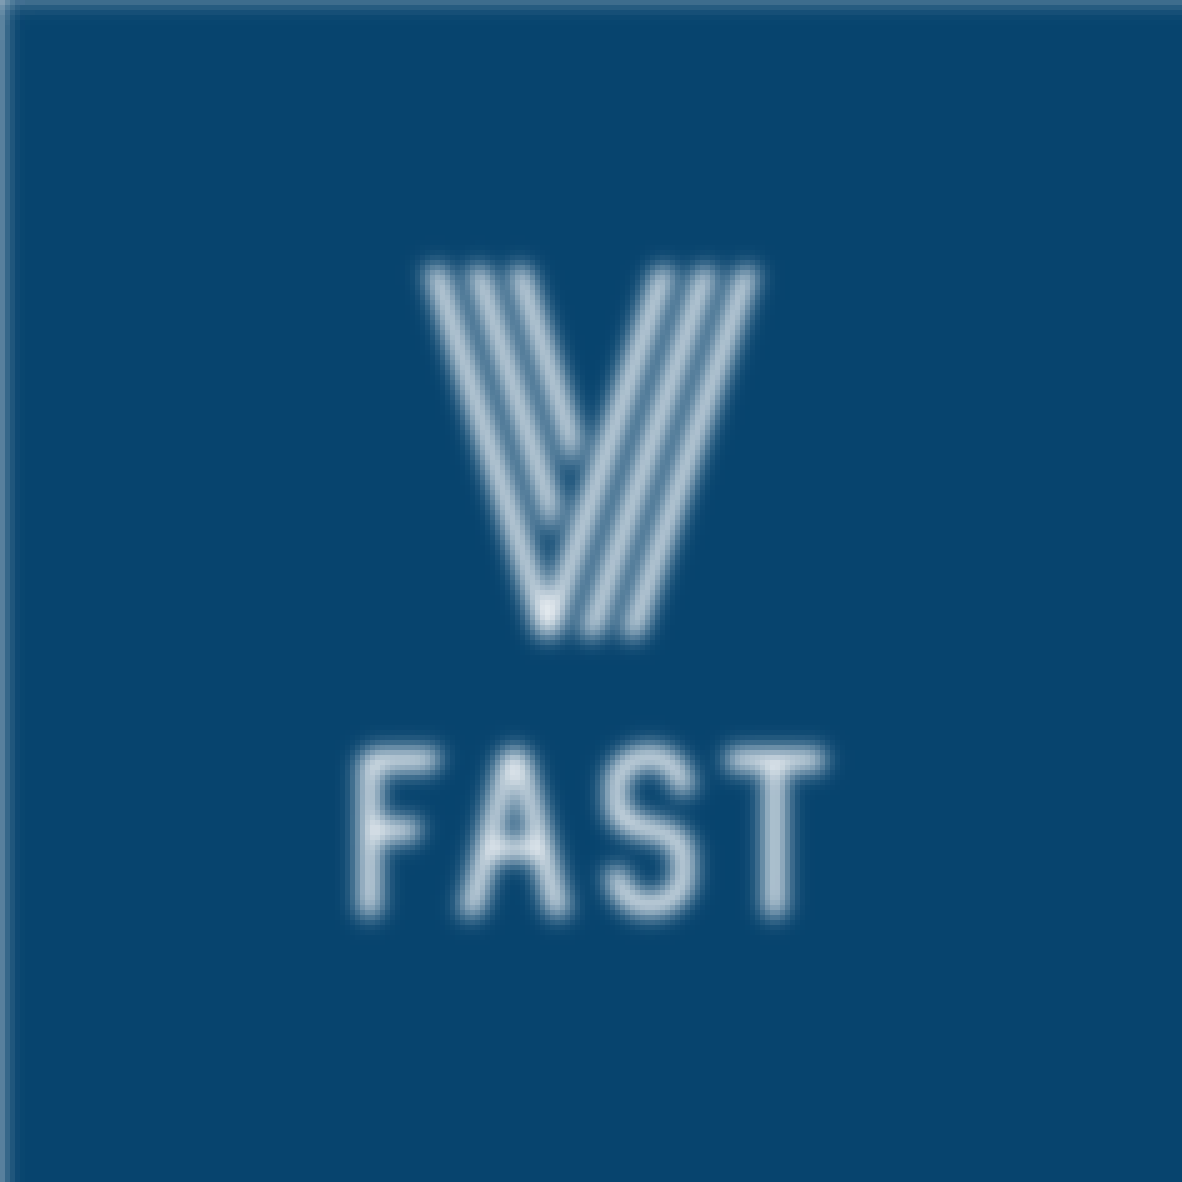 VFast logo.png